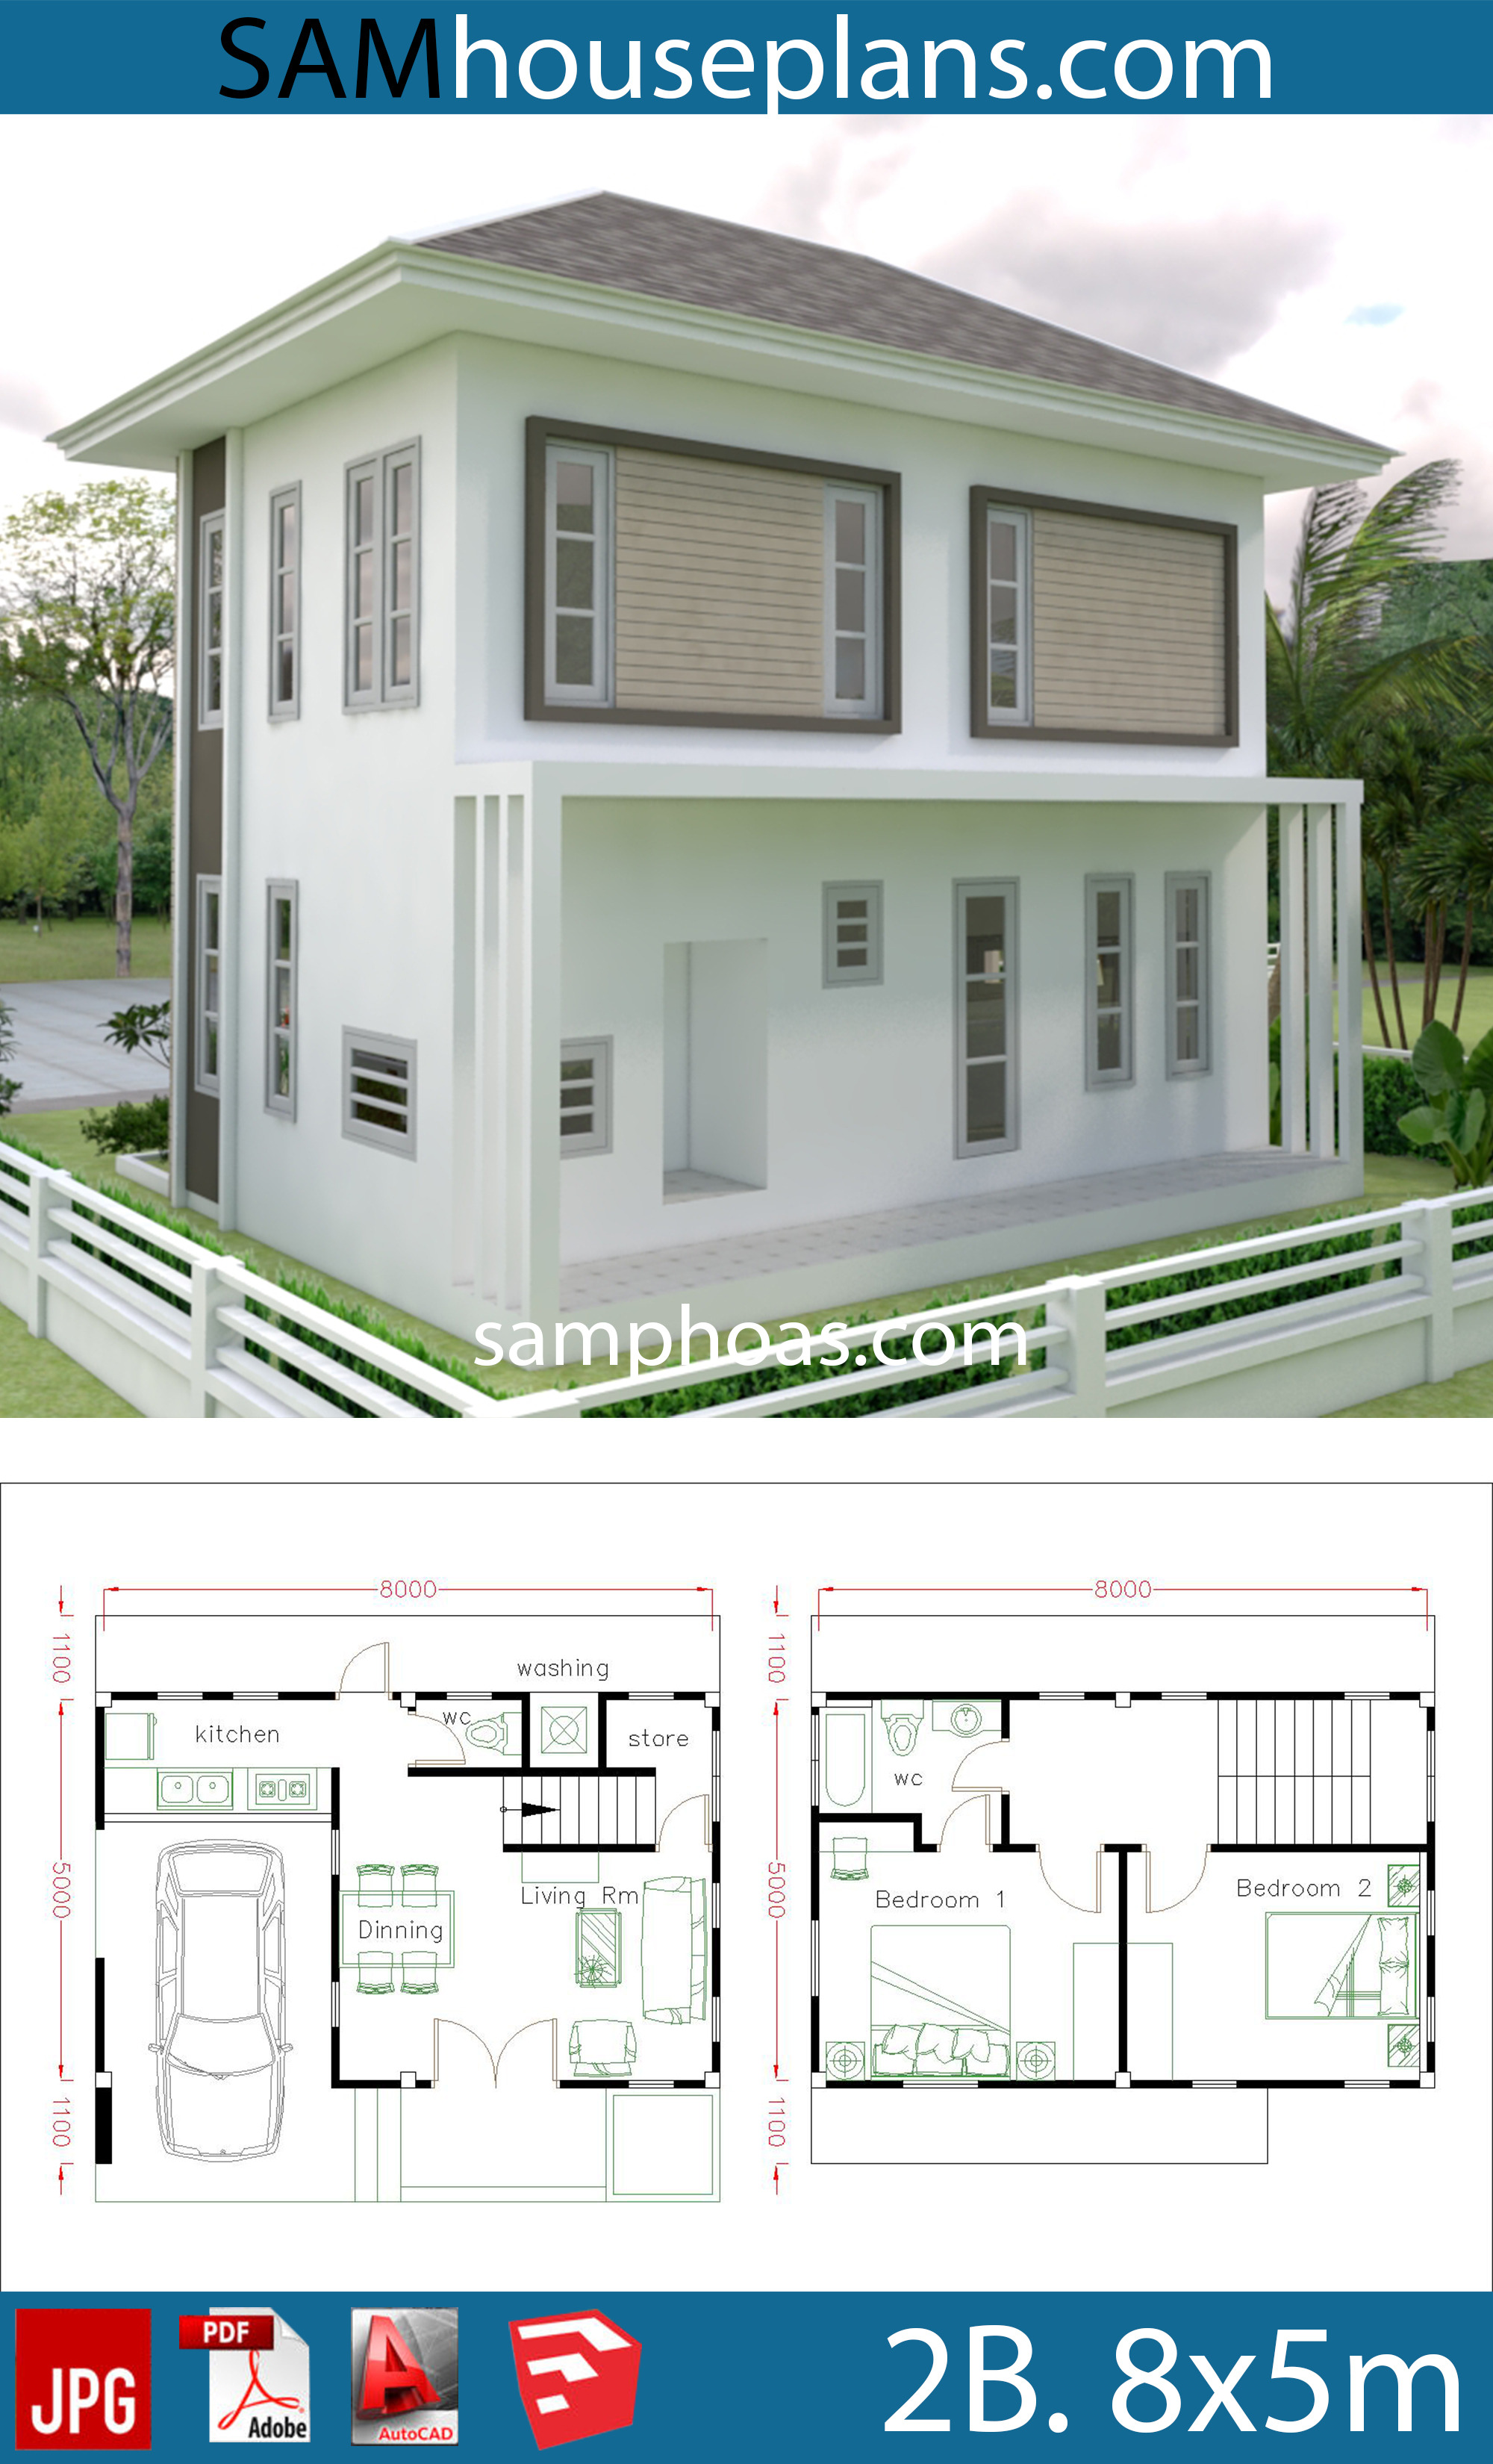 Free Small House Plans and Designs Elegant Small Home Design Plan 8x5m with 2 Bedrooms House Plans